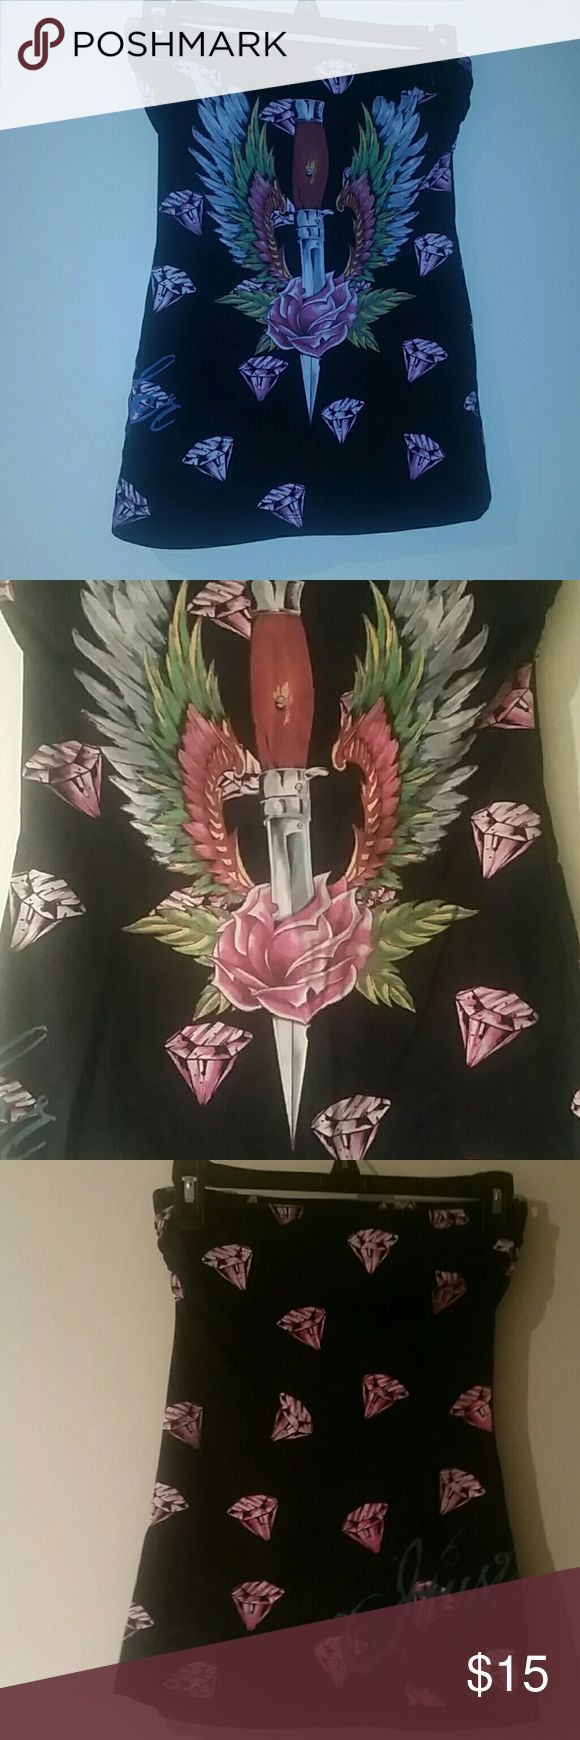 Hustler tube top Black tube top with pink diamonds and a dagger with rose and wings. Only worn a couple of times Hustler Tops